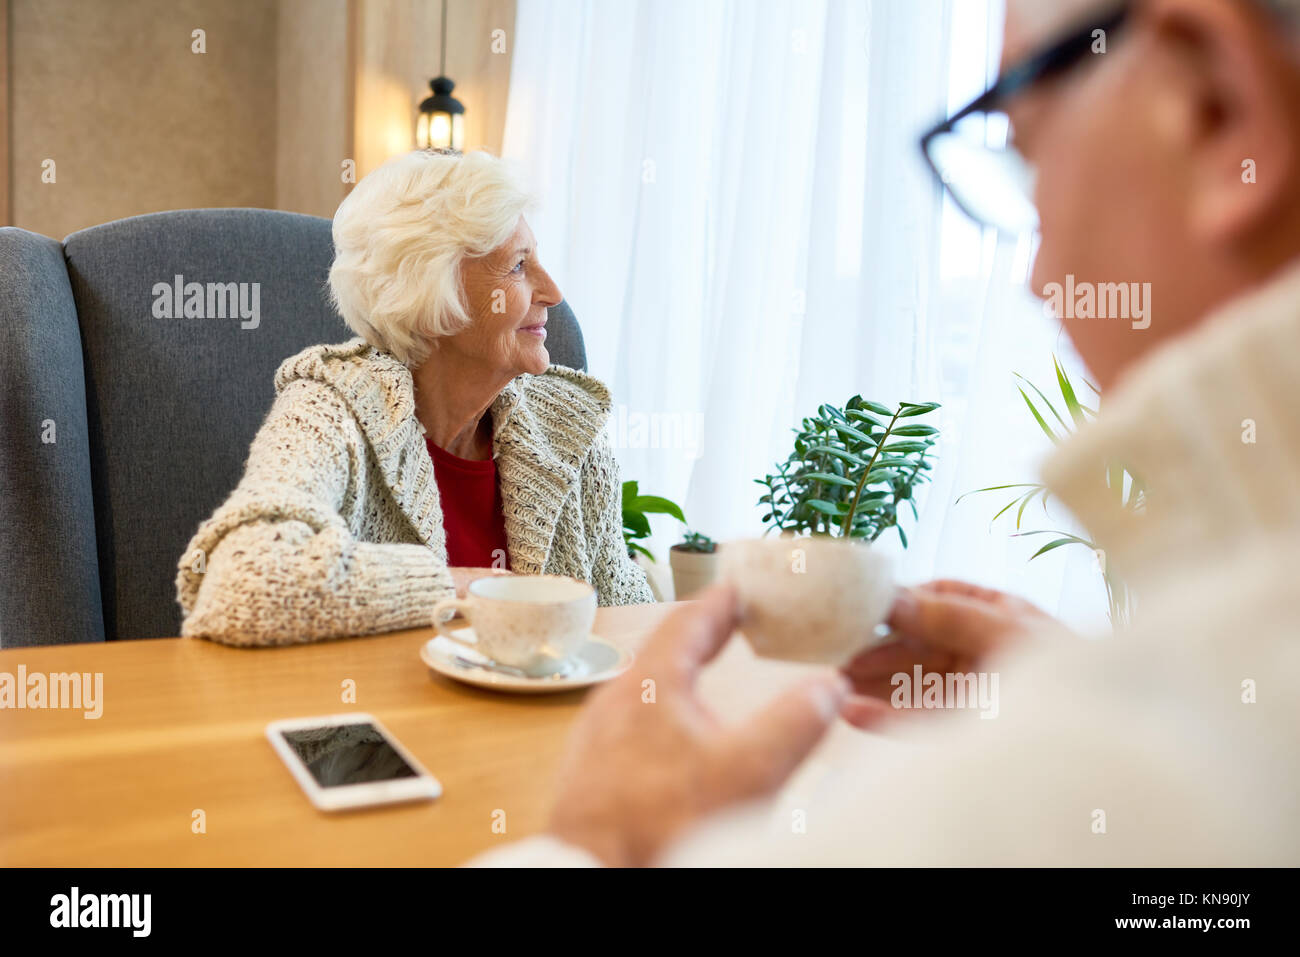 Pensive Woman at Table in Cafe Photo Stock